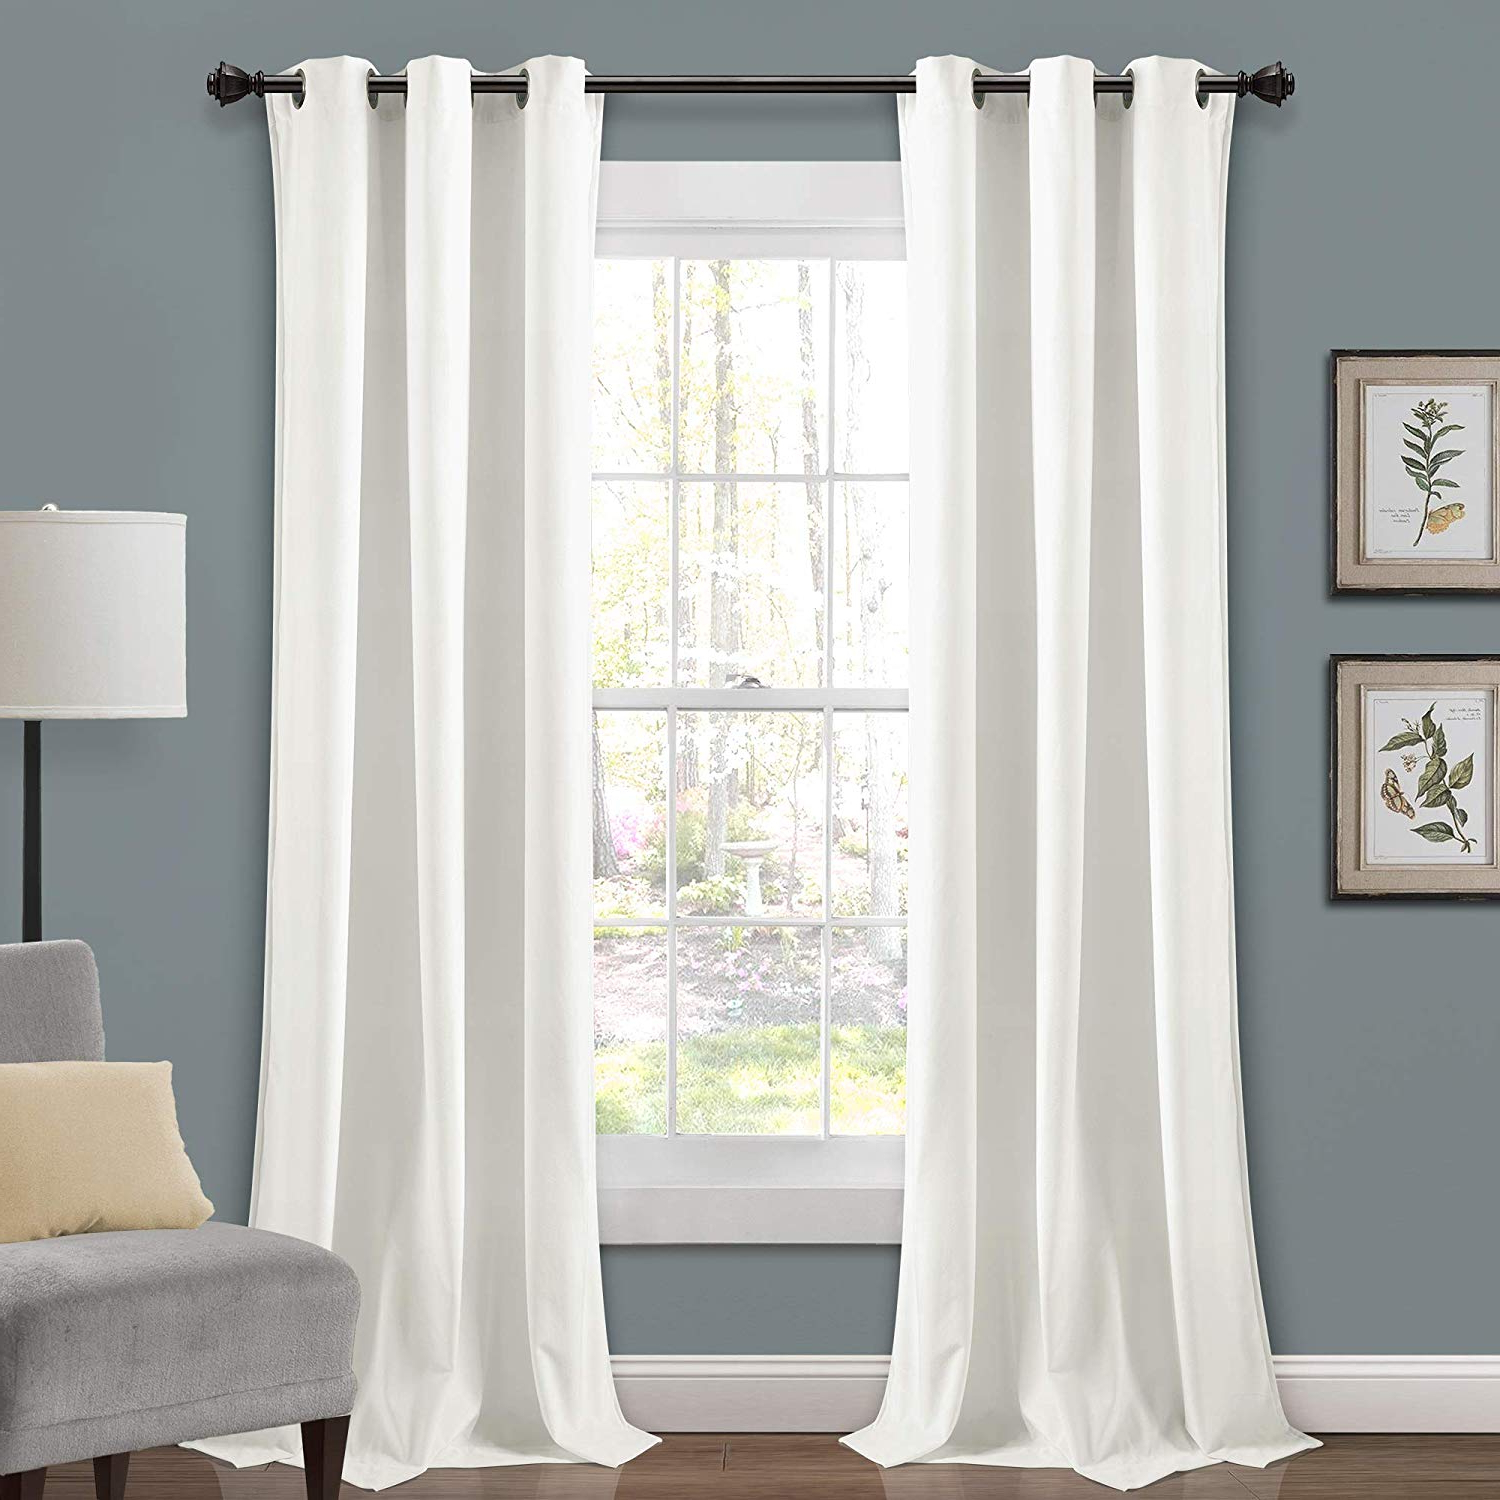 """Best And Newest Velvet Solid Room Darkening Window Curtain Panel Sets Intended For Lush Decor Prima Velvet Curtains Solid Color Room Darkening Window Panel Set For Living, Dining, Bedroom (pair), 84"""" X 38"""", White, L (View 15 of 20)"""